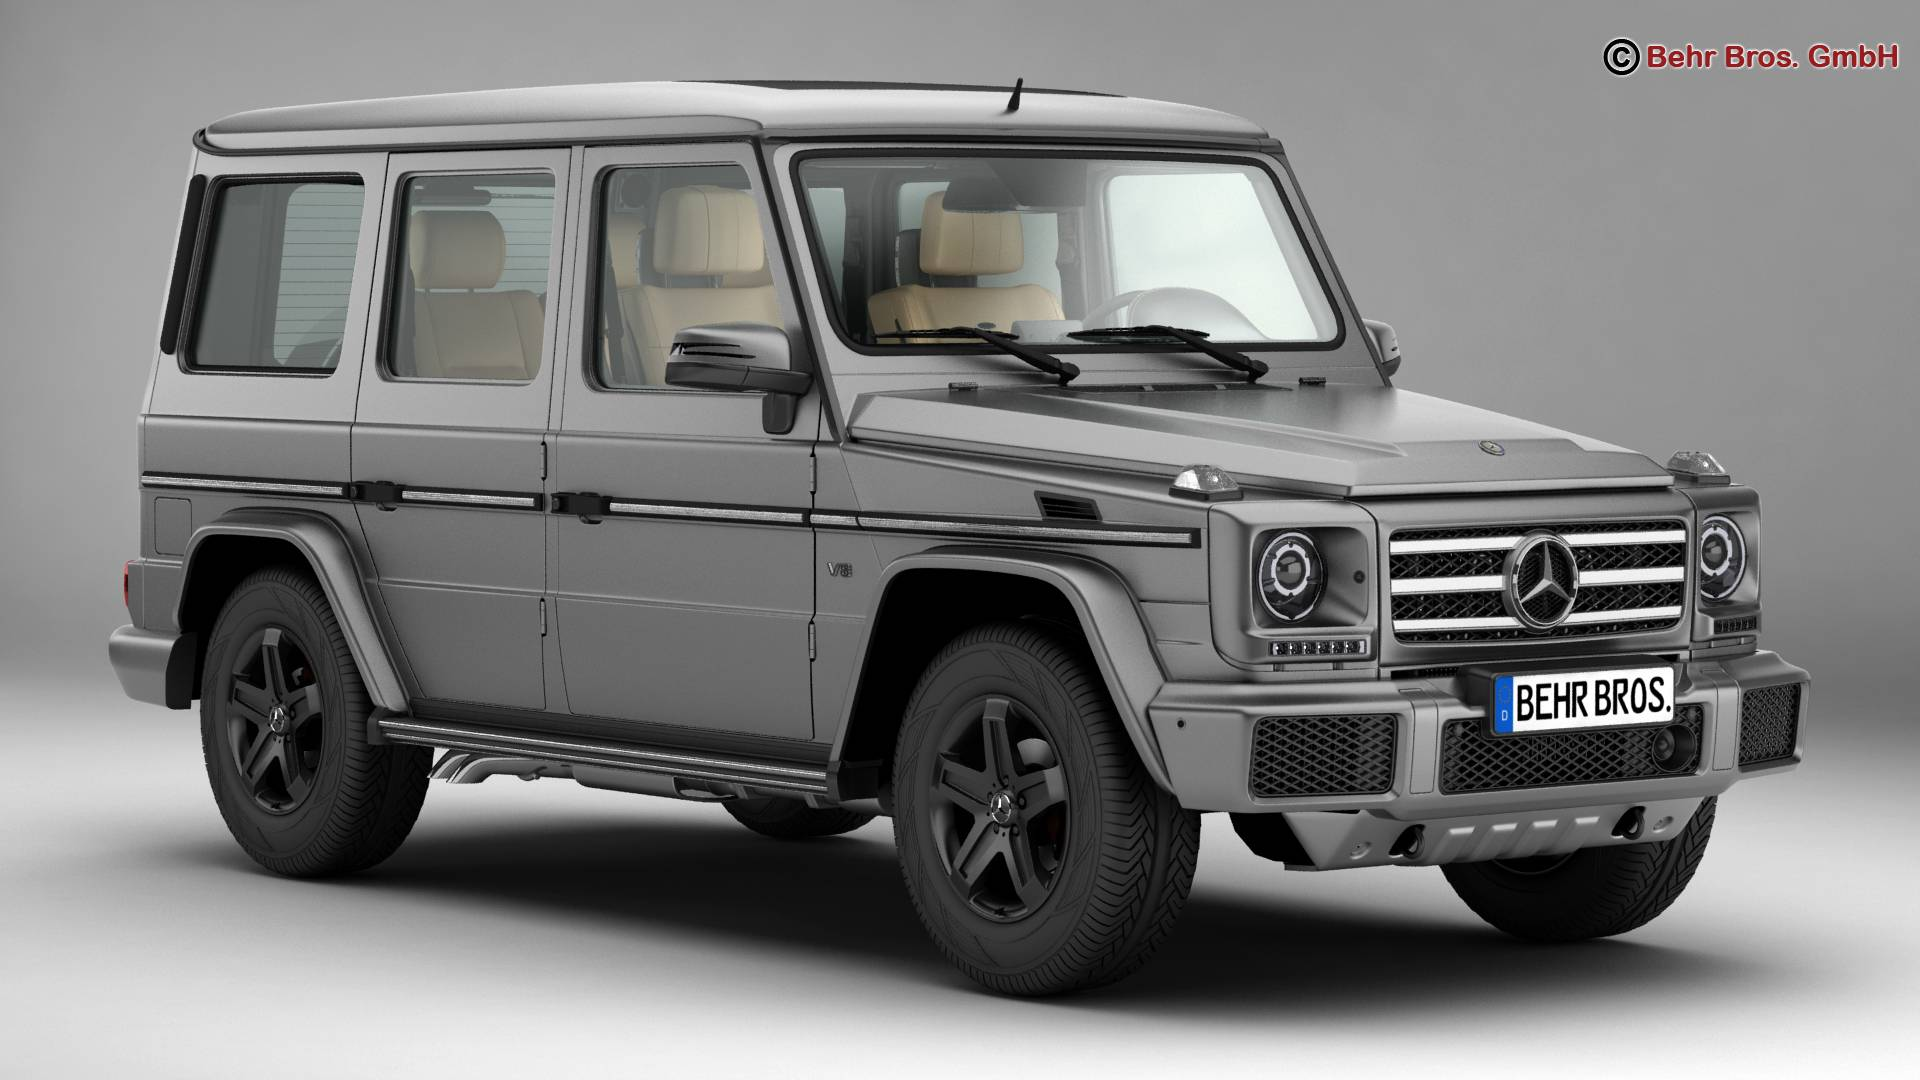 mercedes g class g500 2016 3d model buy mercedes g class g500 2016 3d model flatpyramid. Black Bedroom Furniture Sets. Home Design Ideas